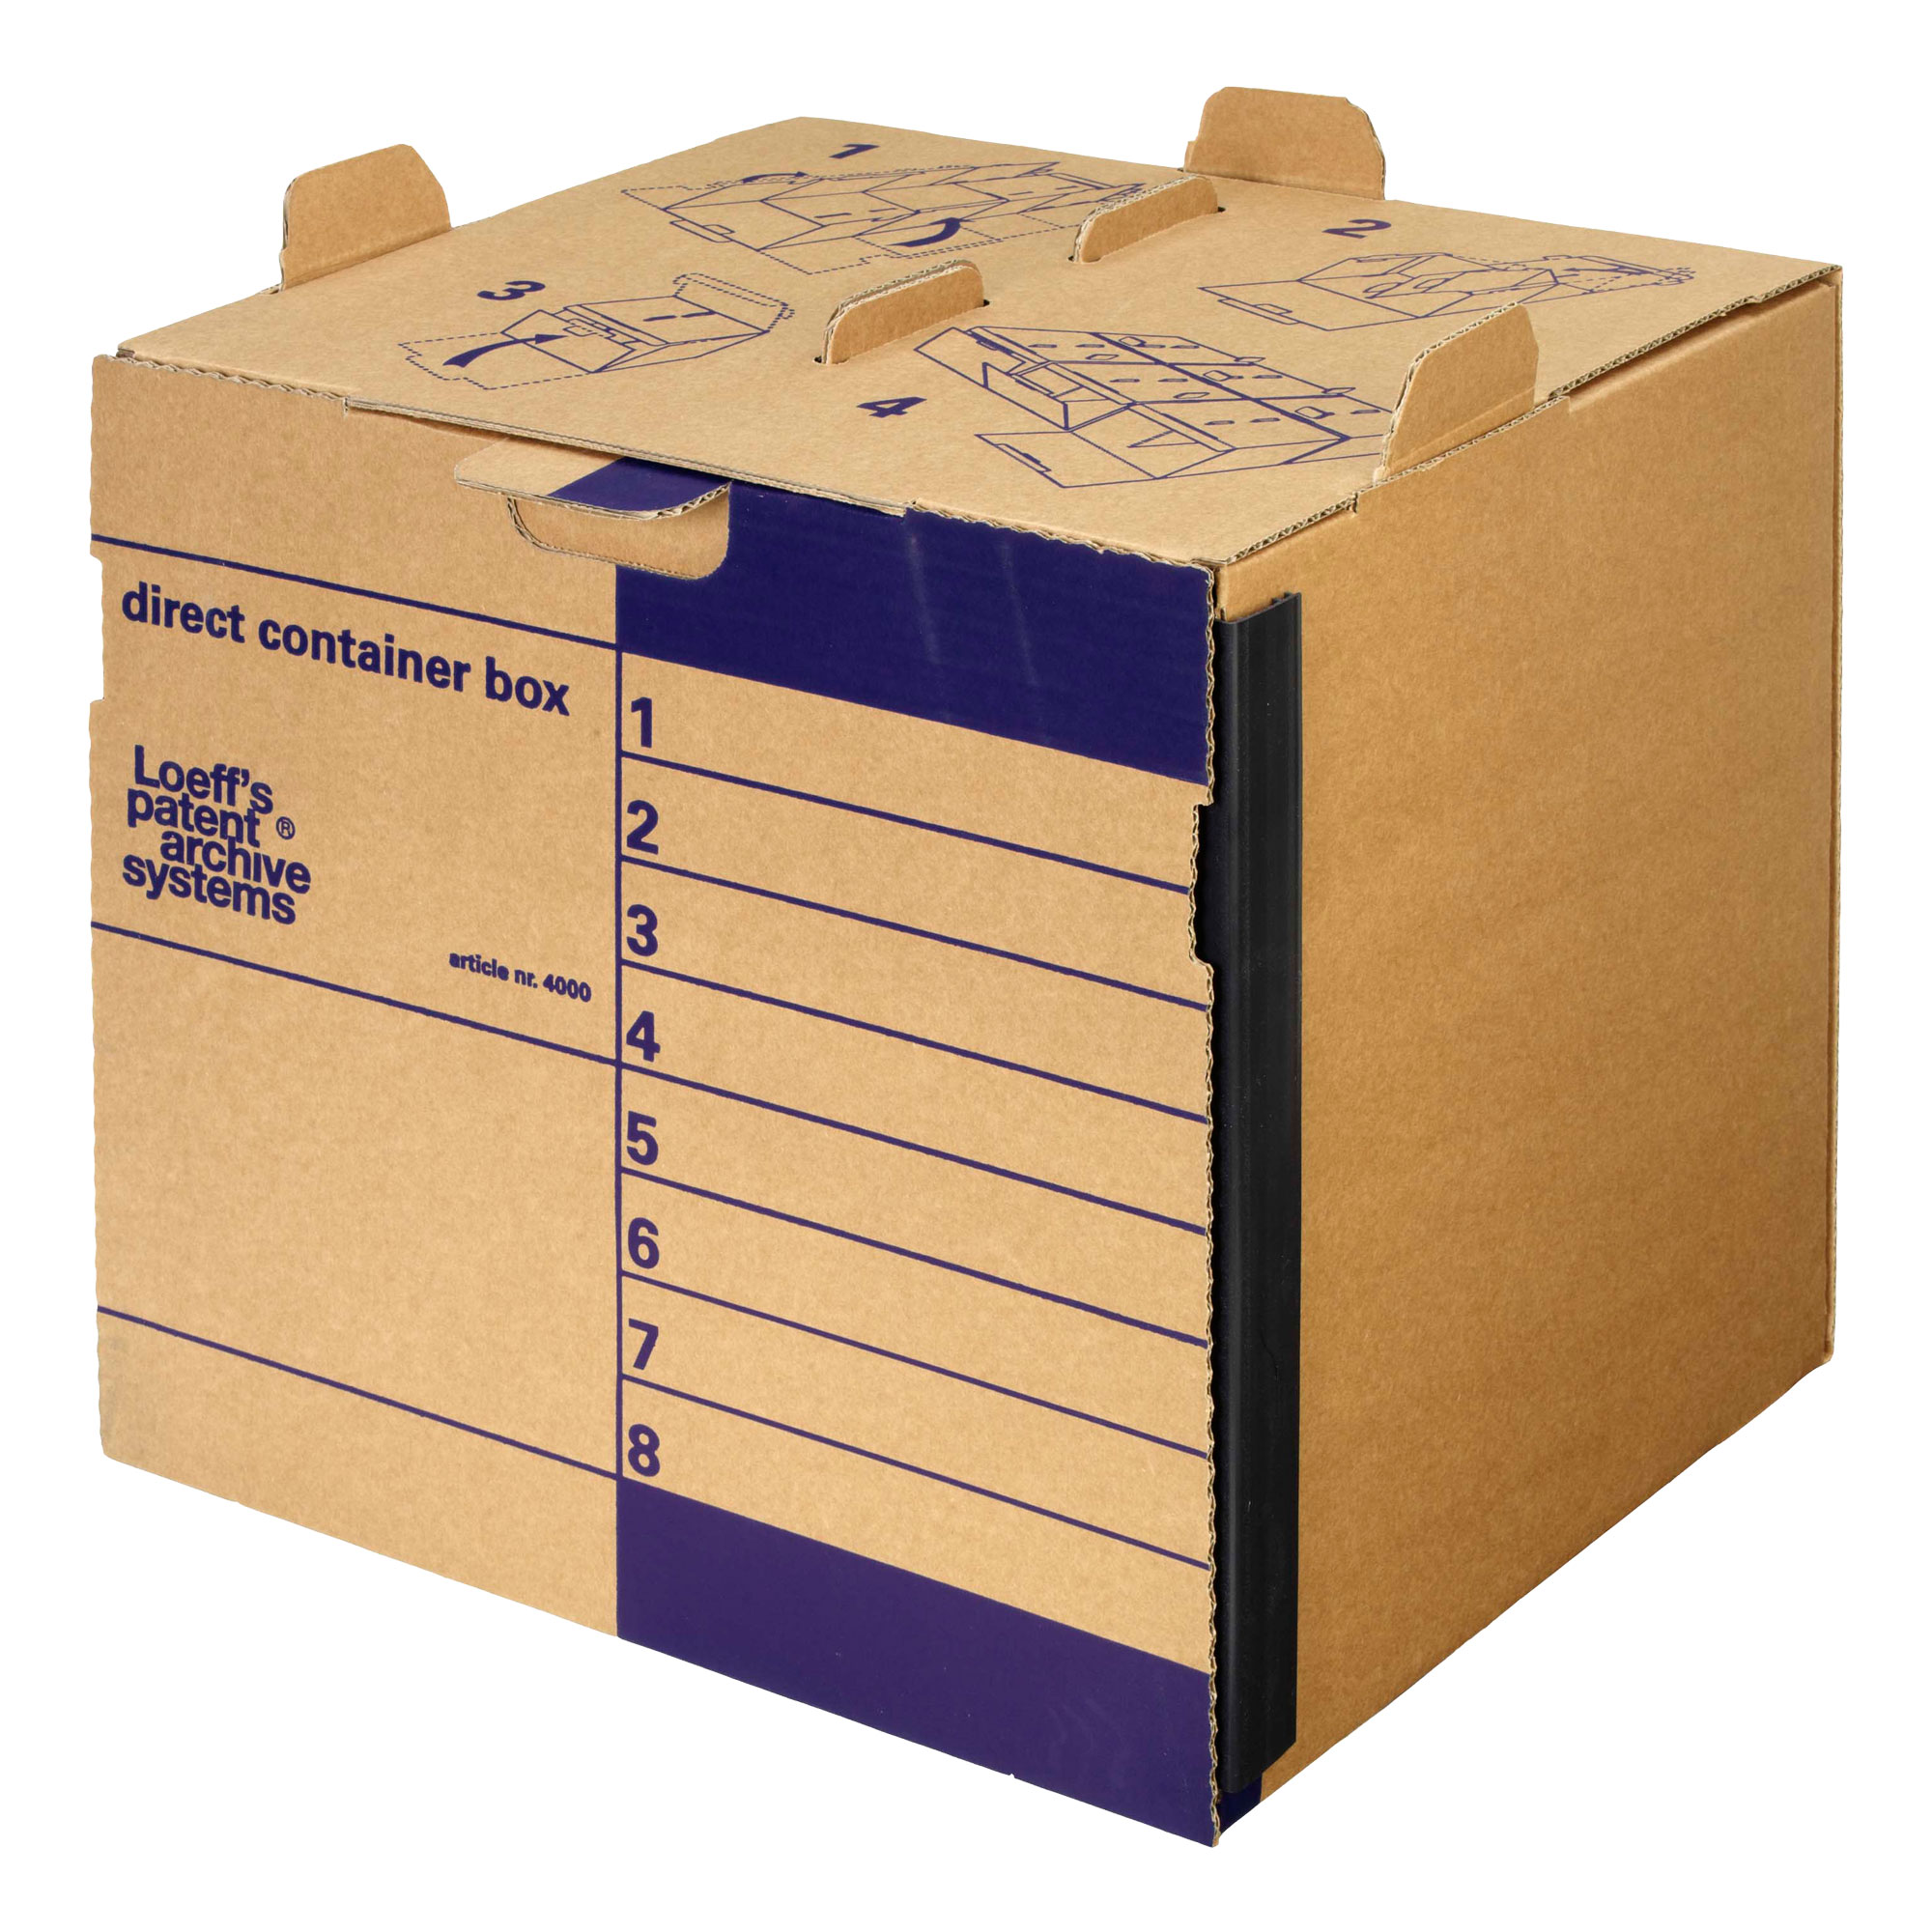 Loeff S Direct Container System A4 Foolscap